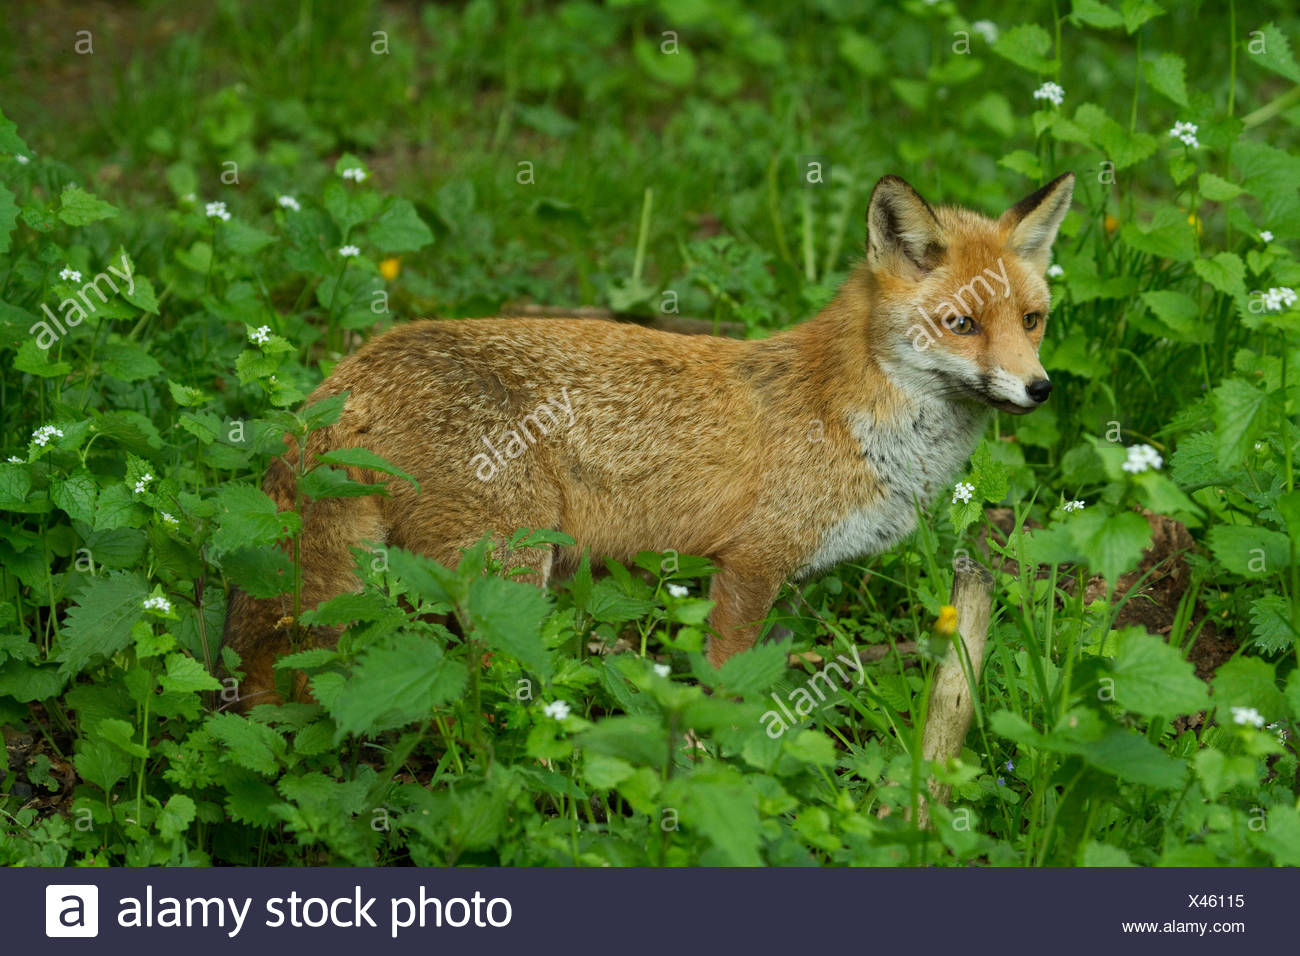 red fox (Vulpes vulpes), ranging a glade, Germany - Stock Image